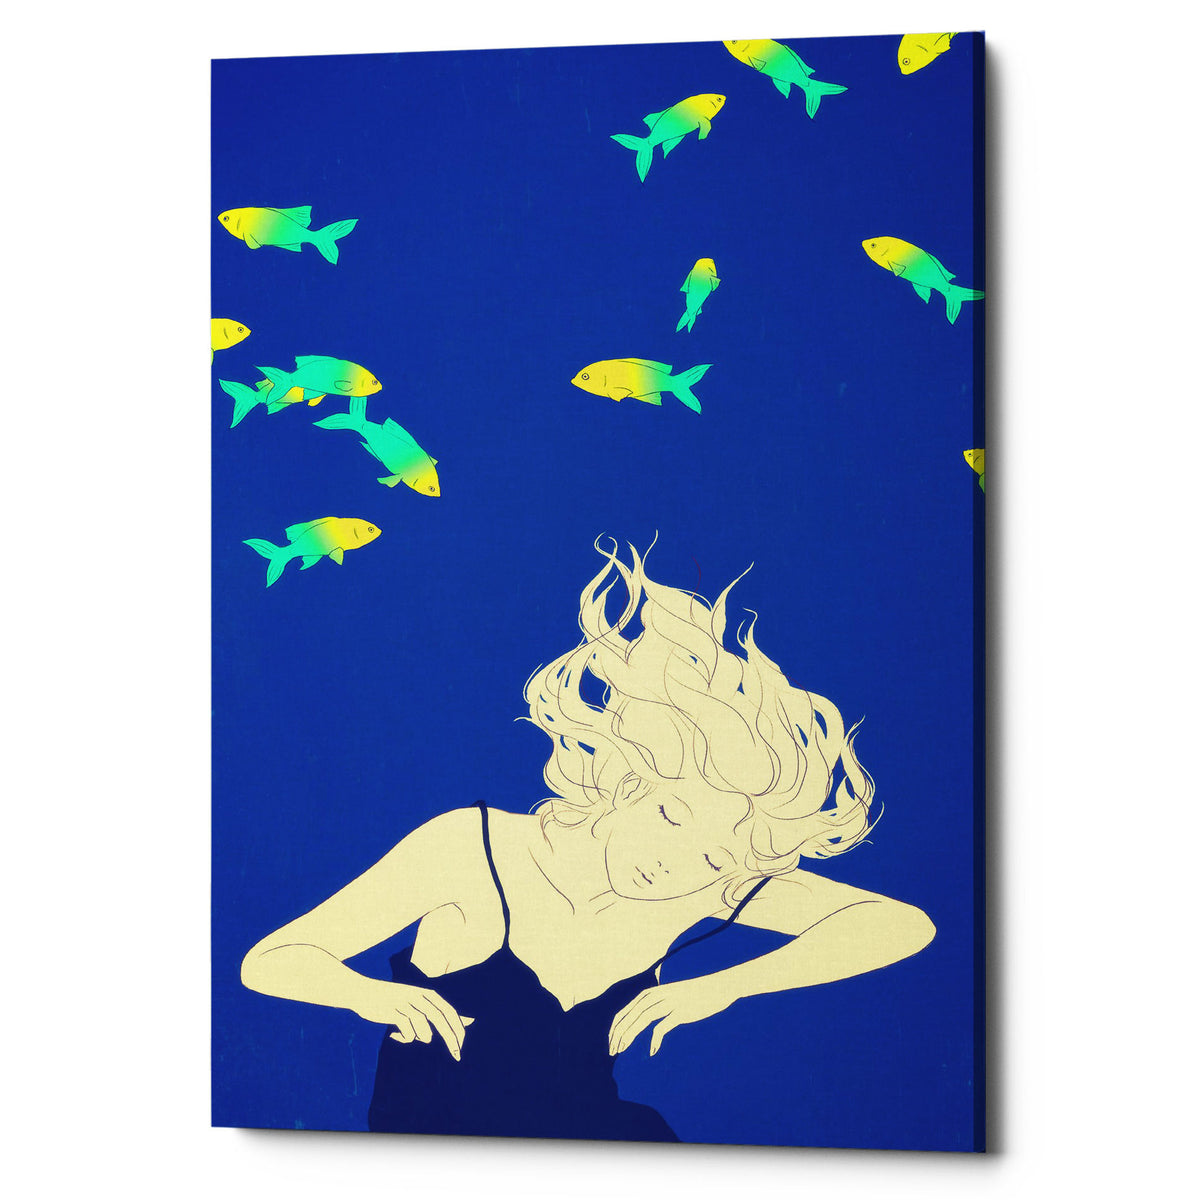 "Epic Graffiti ""Deep Blue"" by Sai Tamiya, Giclee Canvas Wall Art"